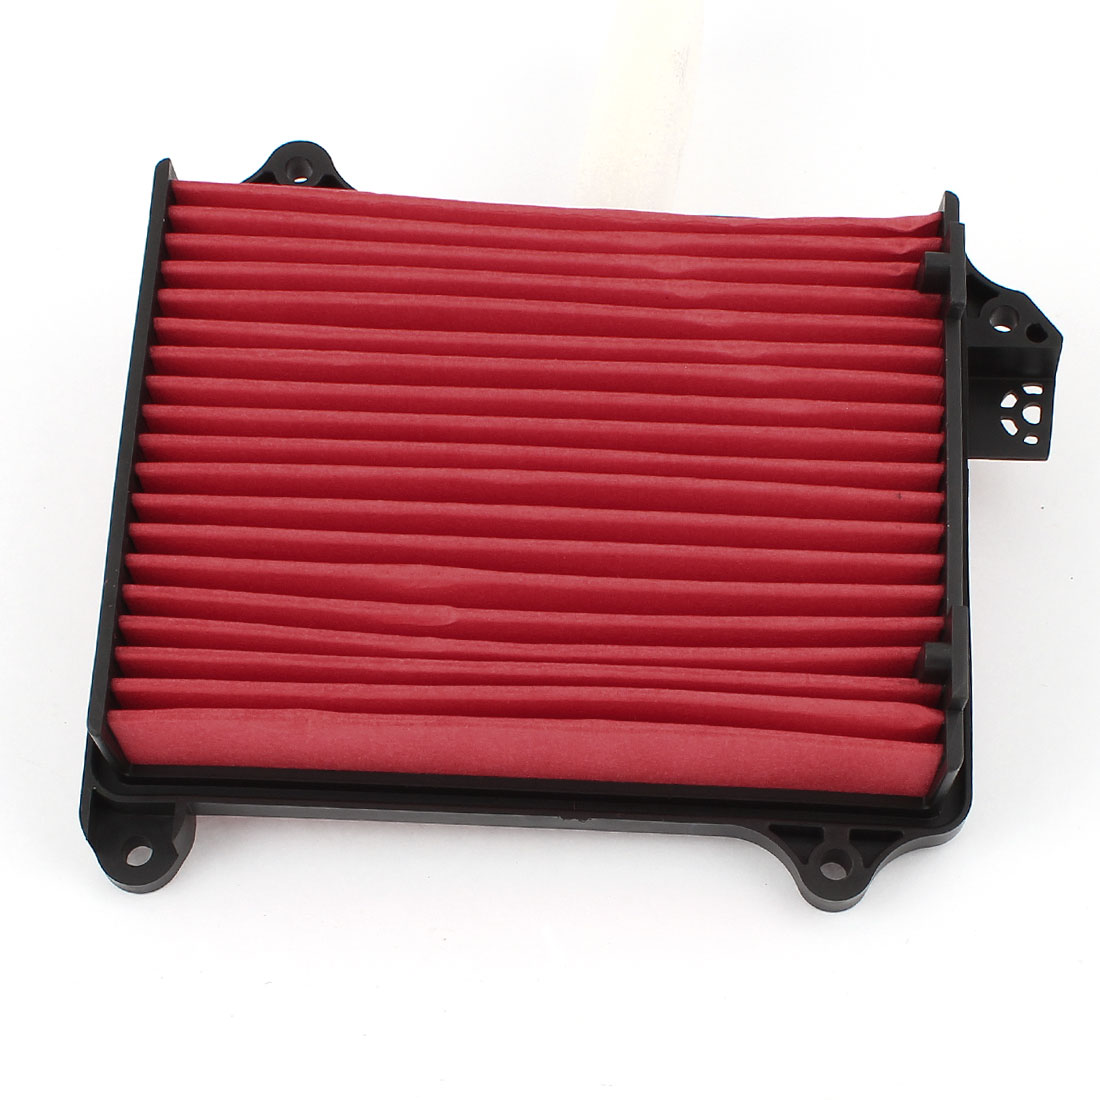 Unique Bargains Motorbike Air Intake Filter Replacement for Honda CB400SF